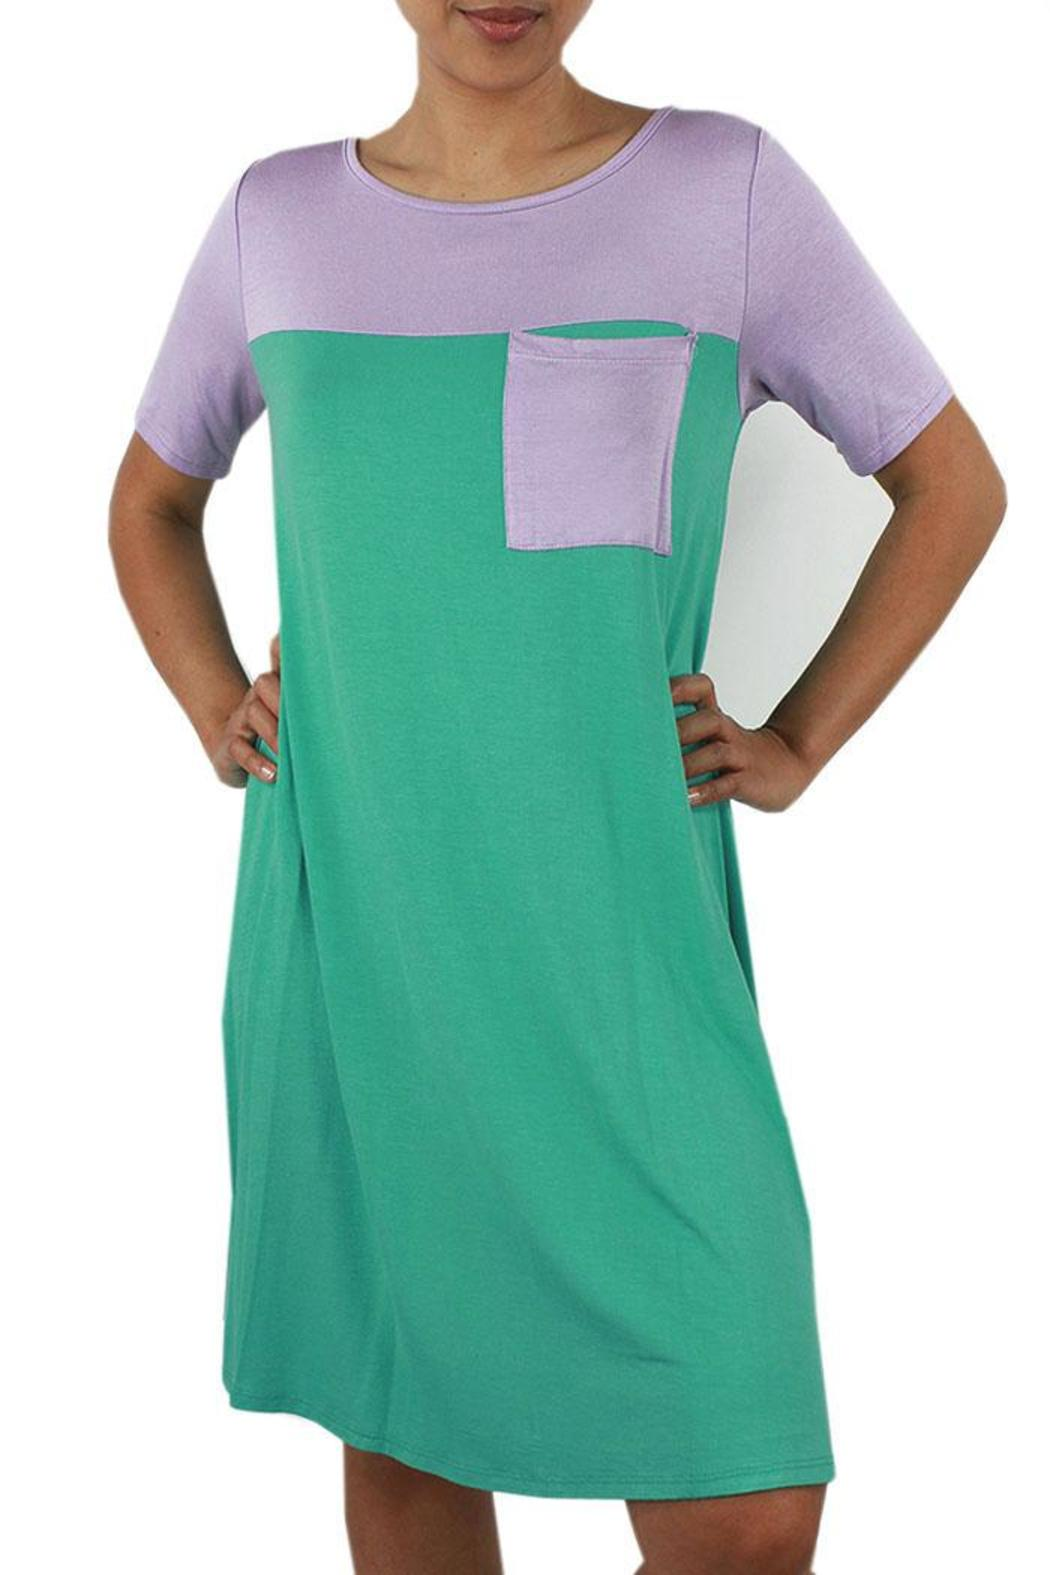 Find color block from a vast selection of Diverse Women's Clothing. Get great deals on eBay!